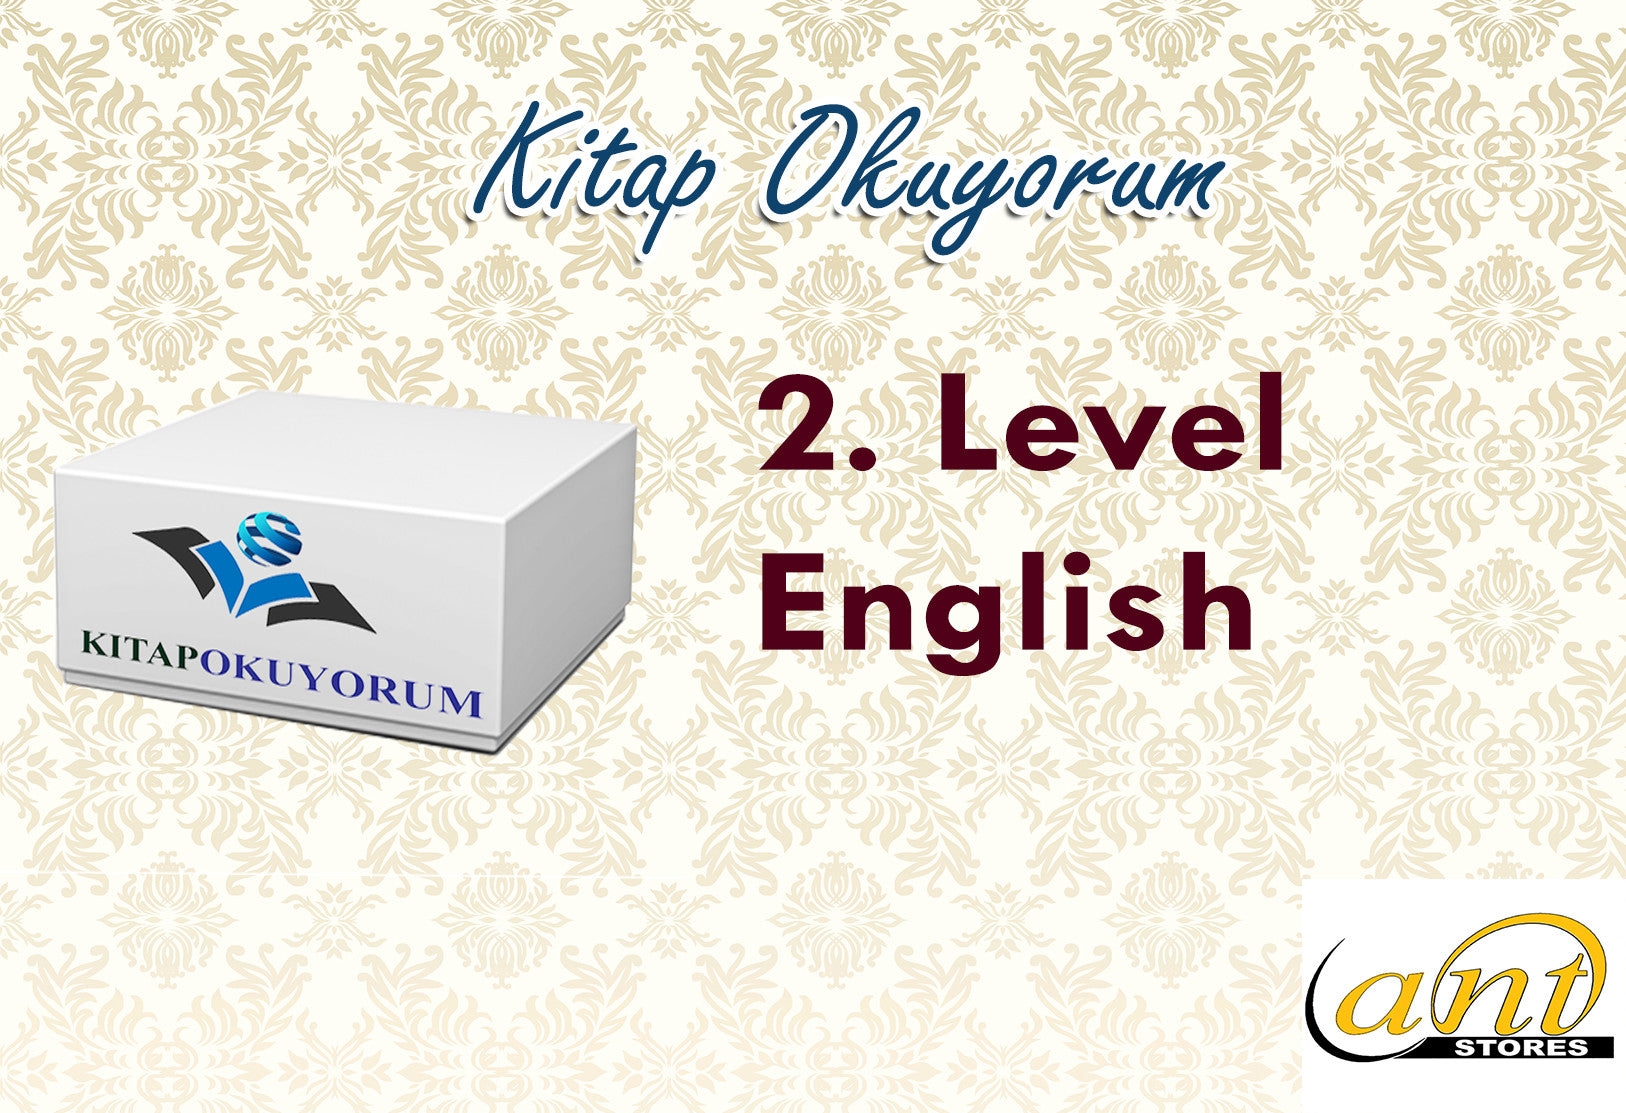 Kitap Okuyorum 2. Level English